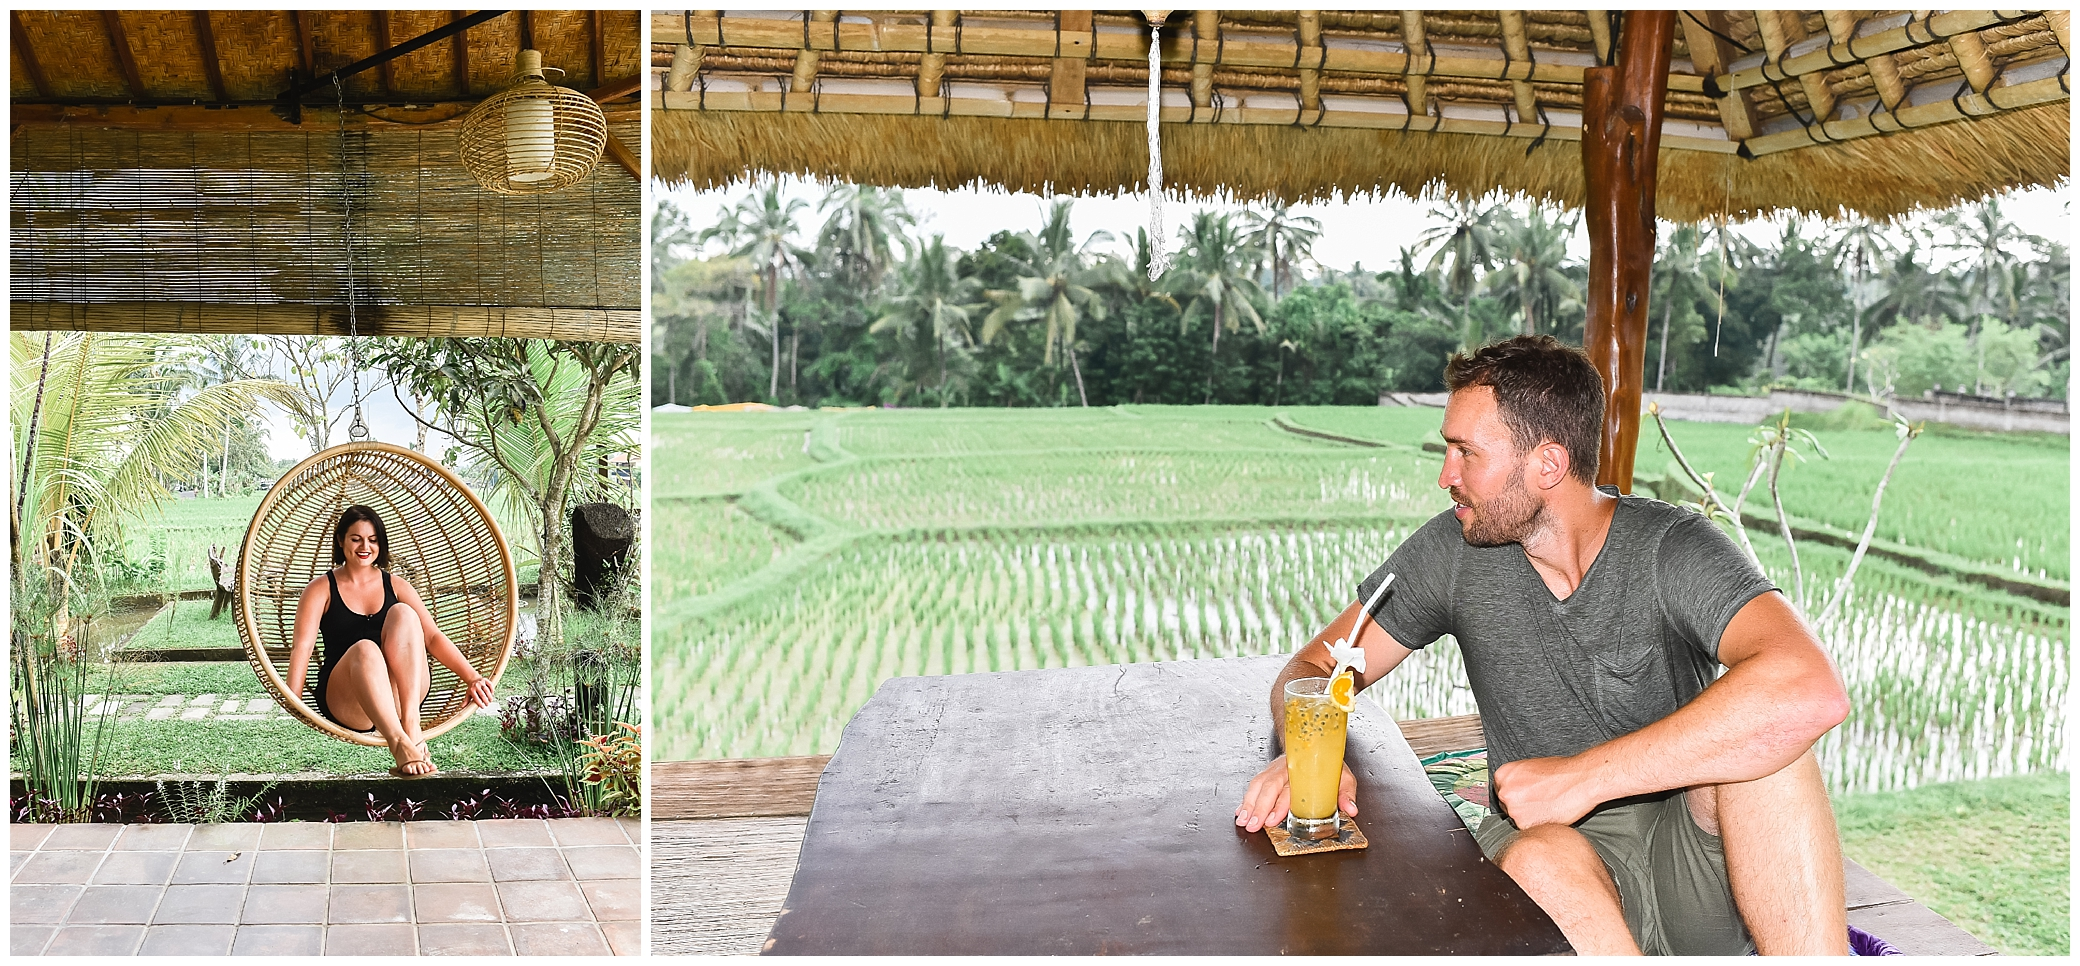 Top 10 Awesome Things To Do In Ubud_0054.jpg